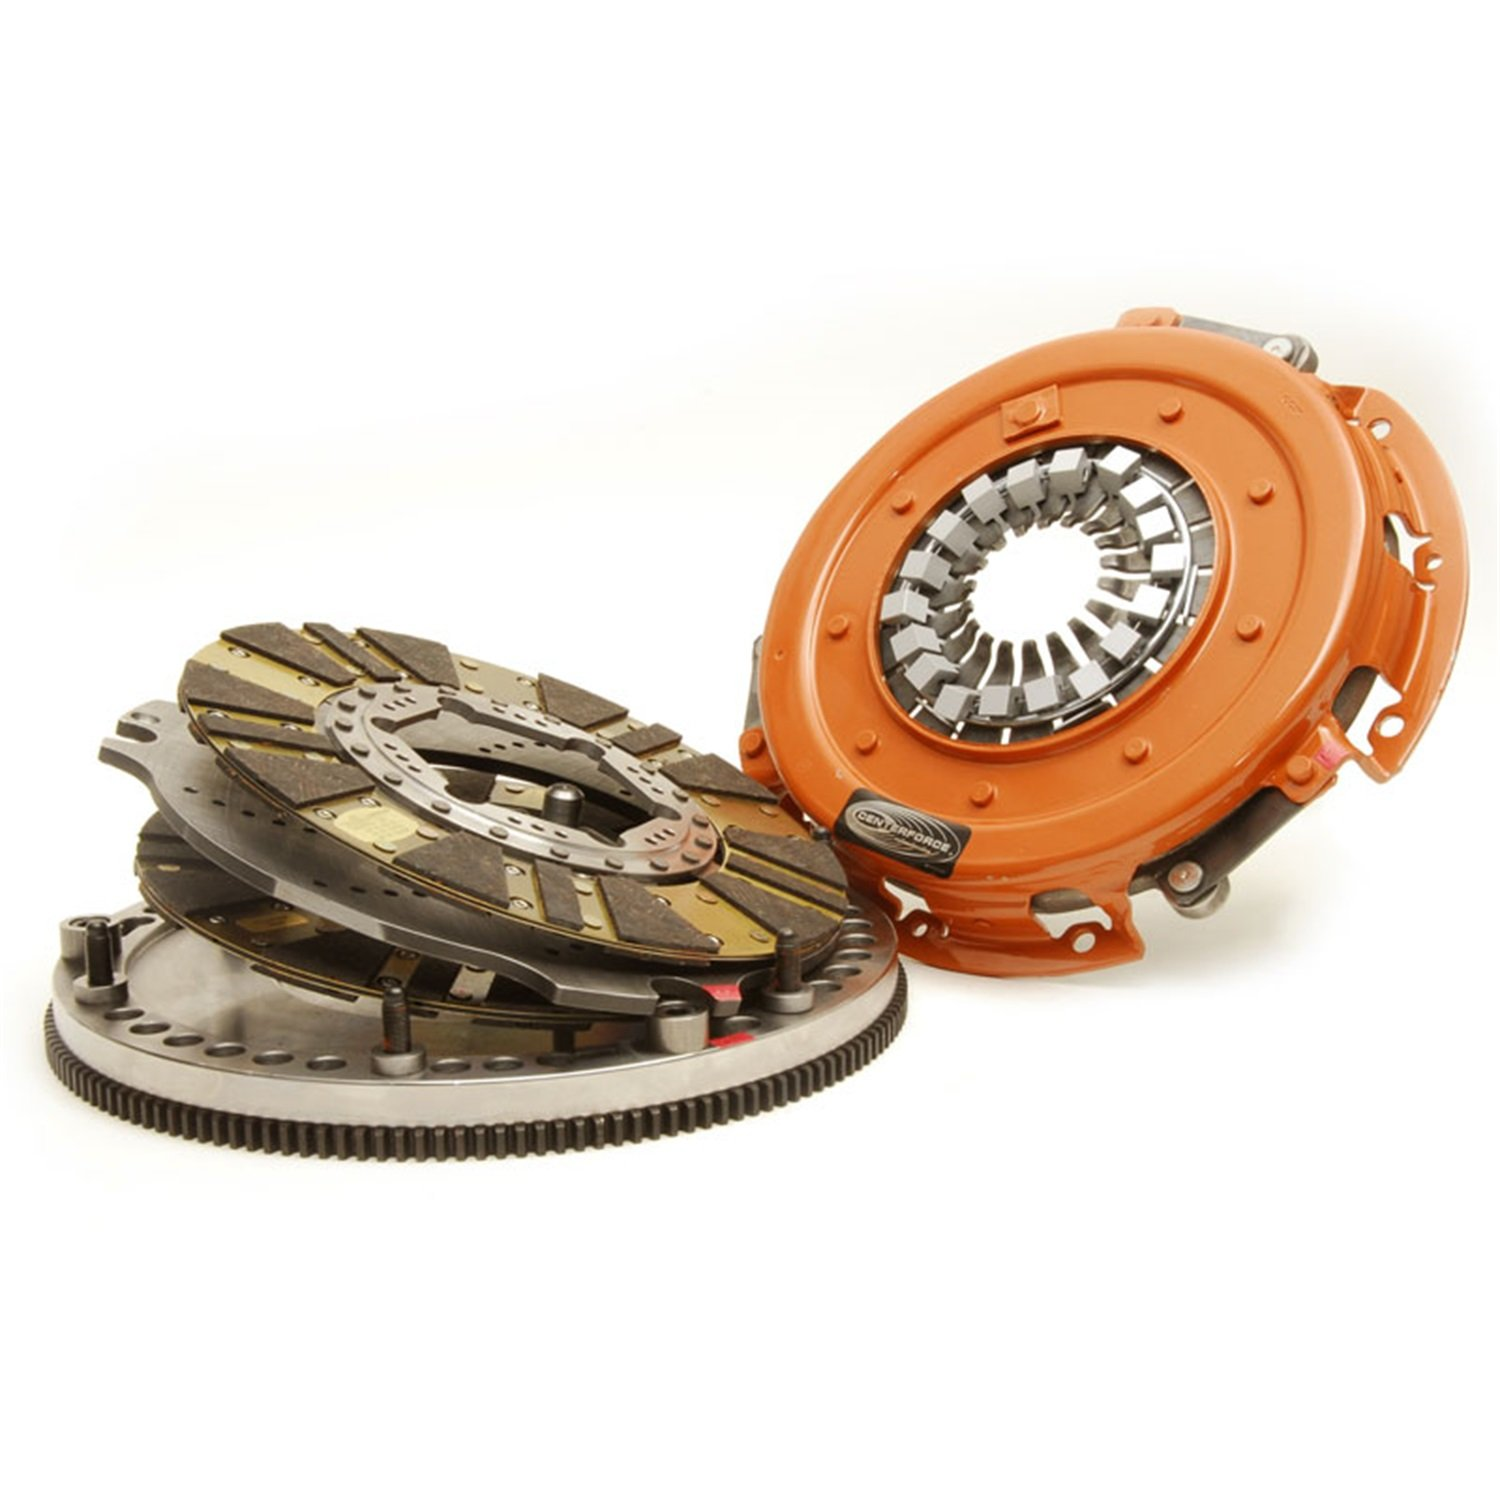 Centerforce 04714800 DYAD Drive System Twin Disc Clutch by Centerforce (Image #1)